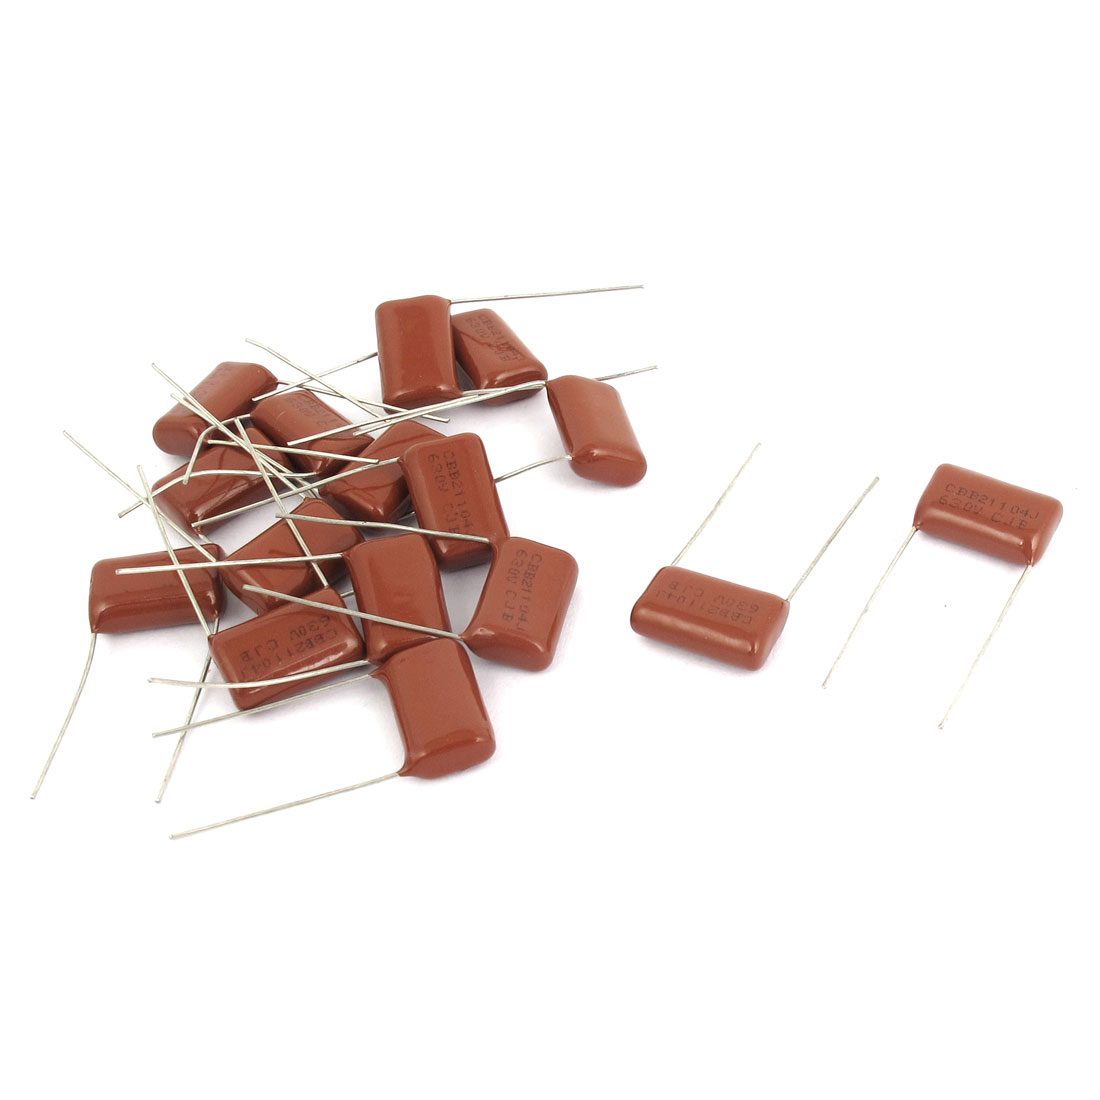 16pcs 104J 630V 0.1uF Electronic Components Metallized Polyester Film Capacitors